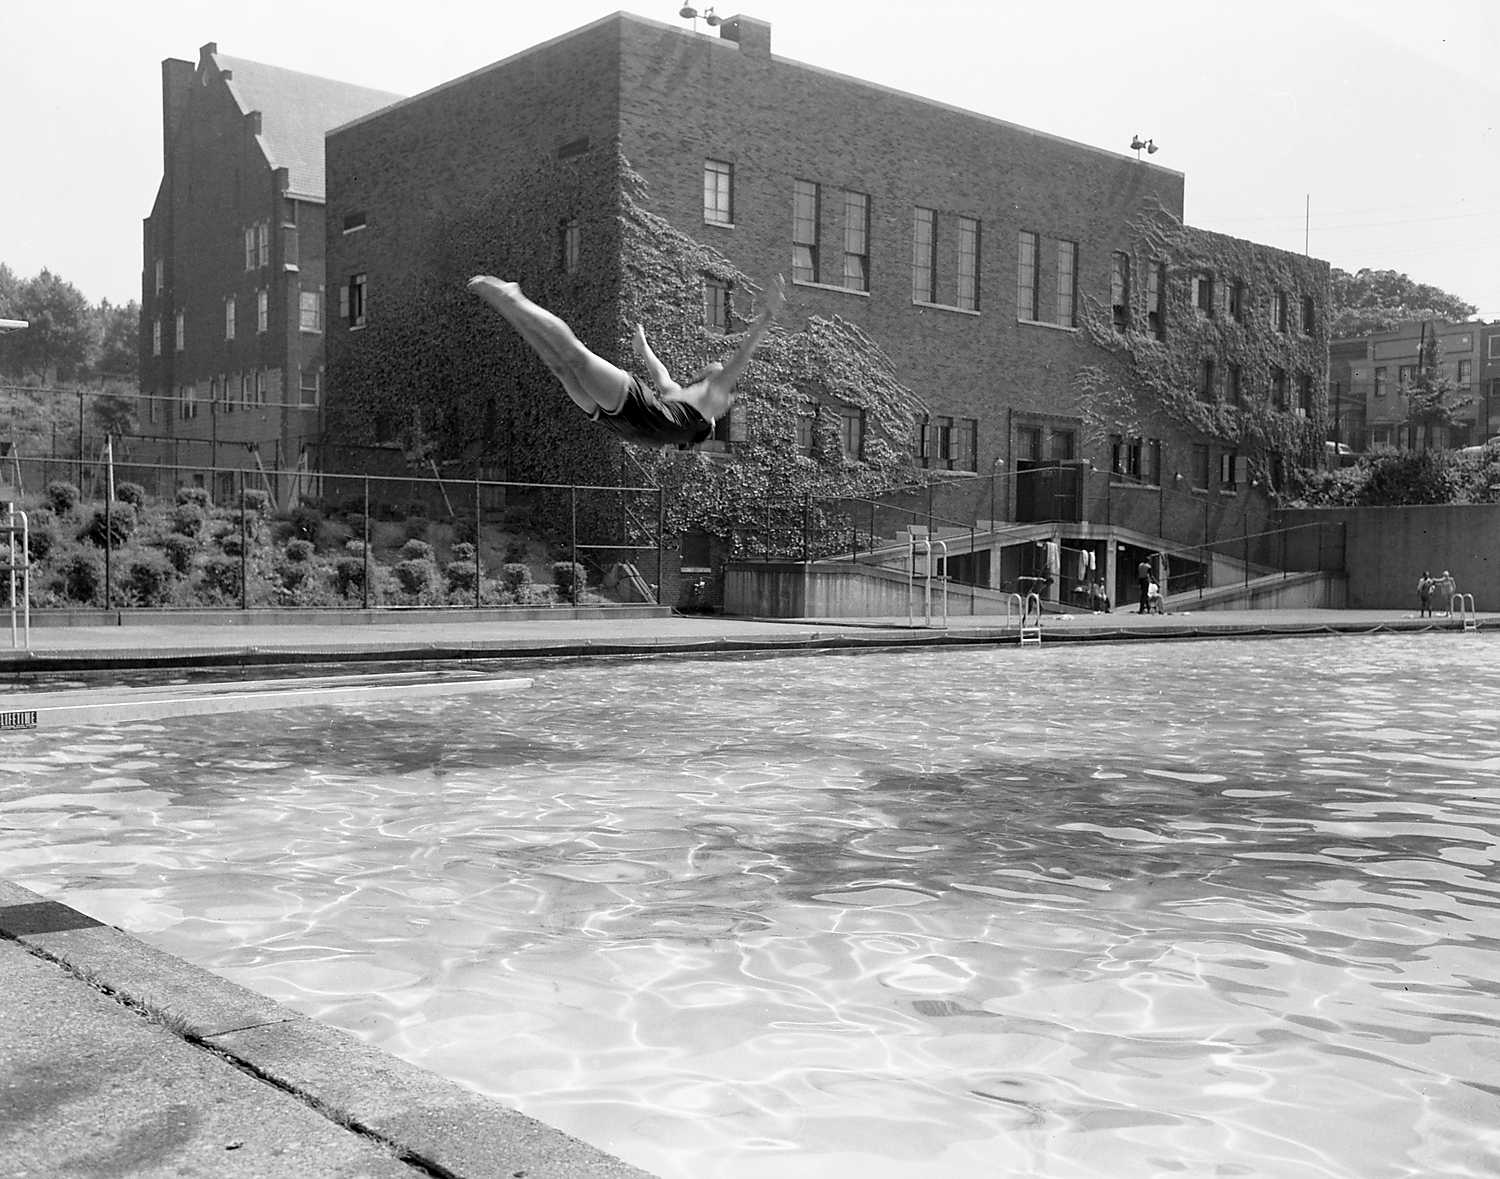 Ammon Swimming Pool: Diving Into The Pool